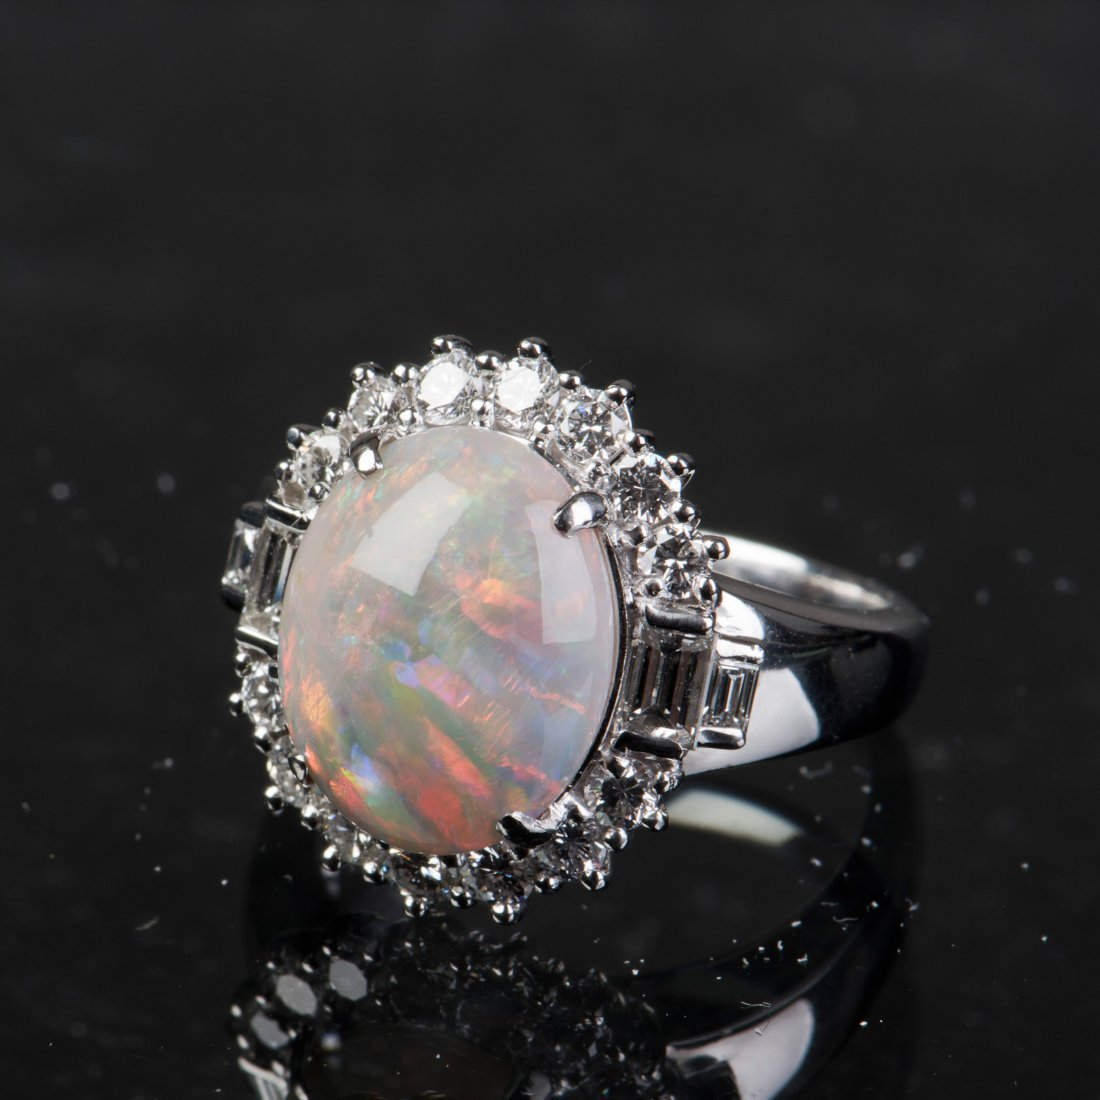 AN OVAL-CUT OPAL AND DIAMOND RING